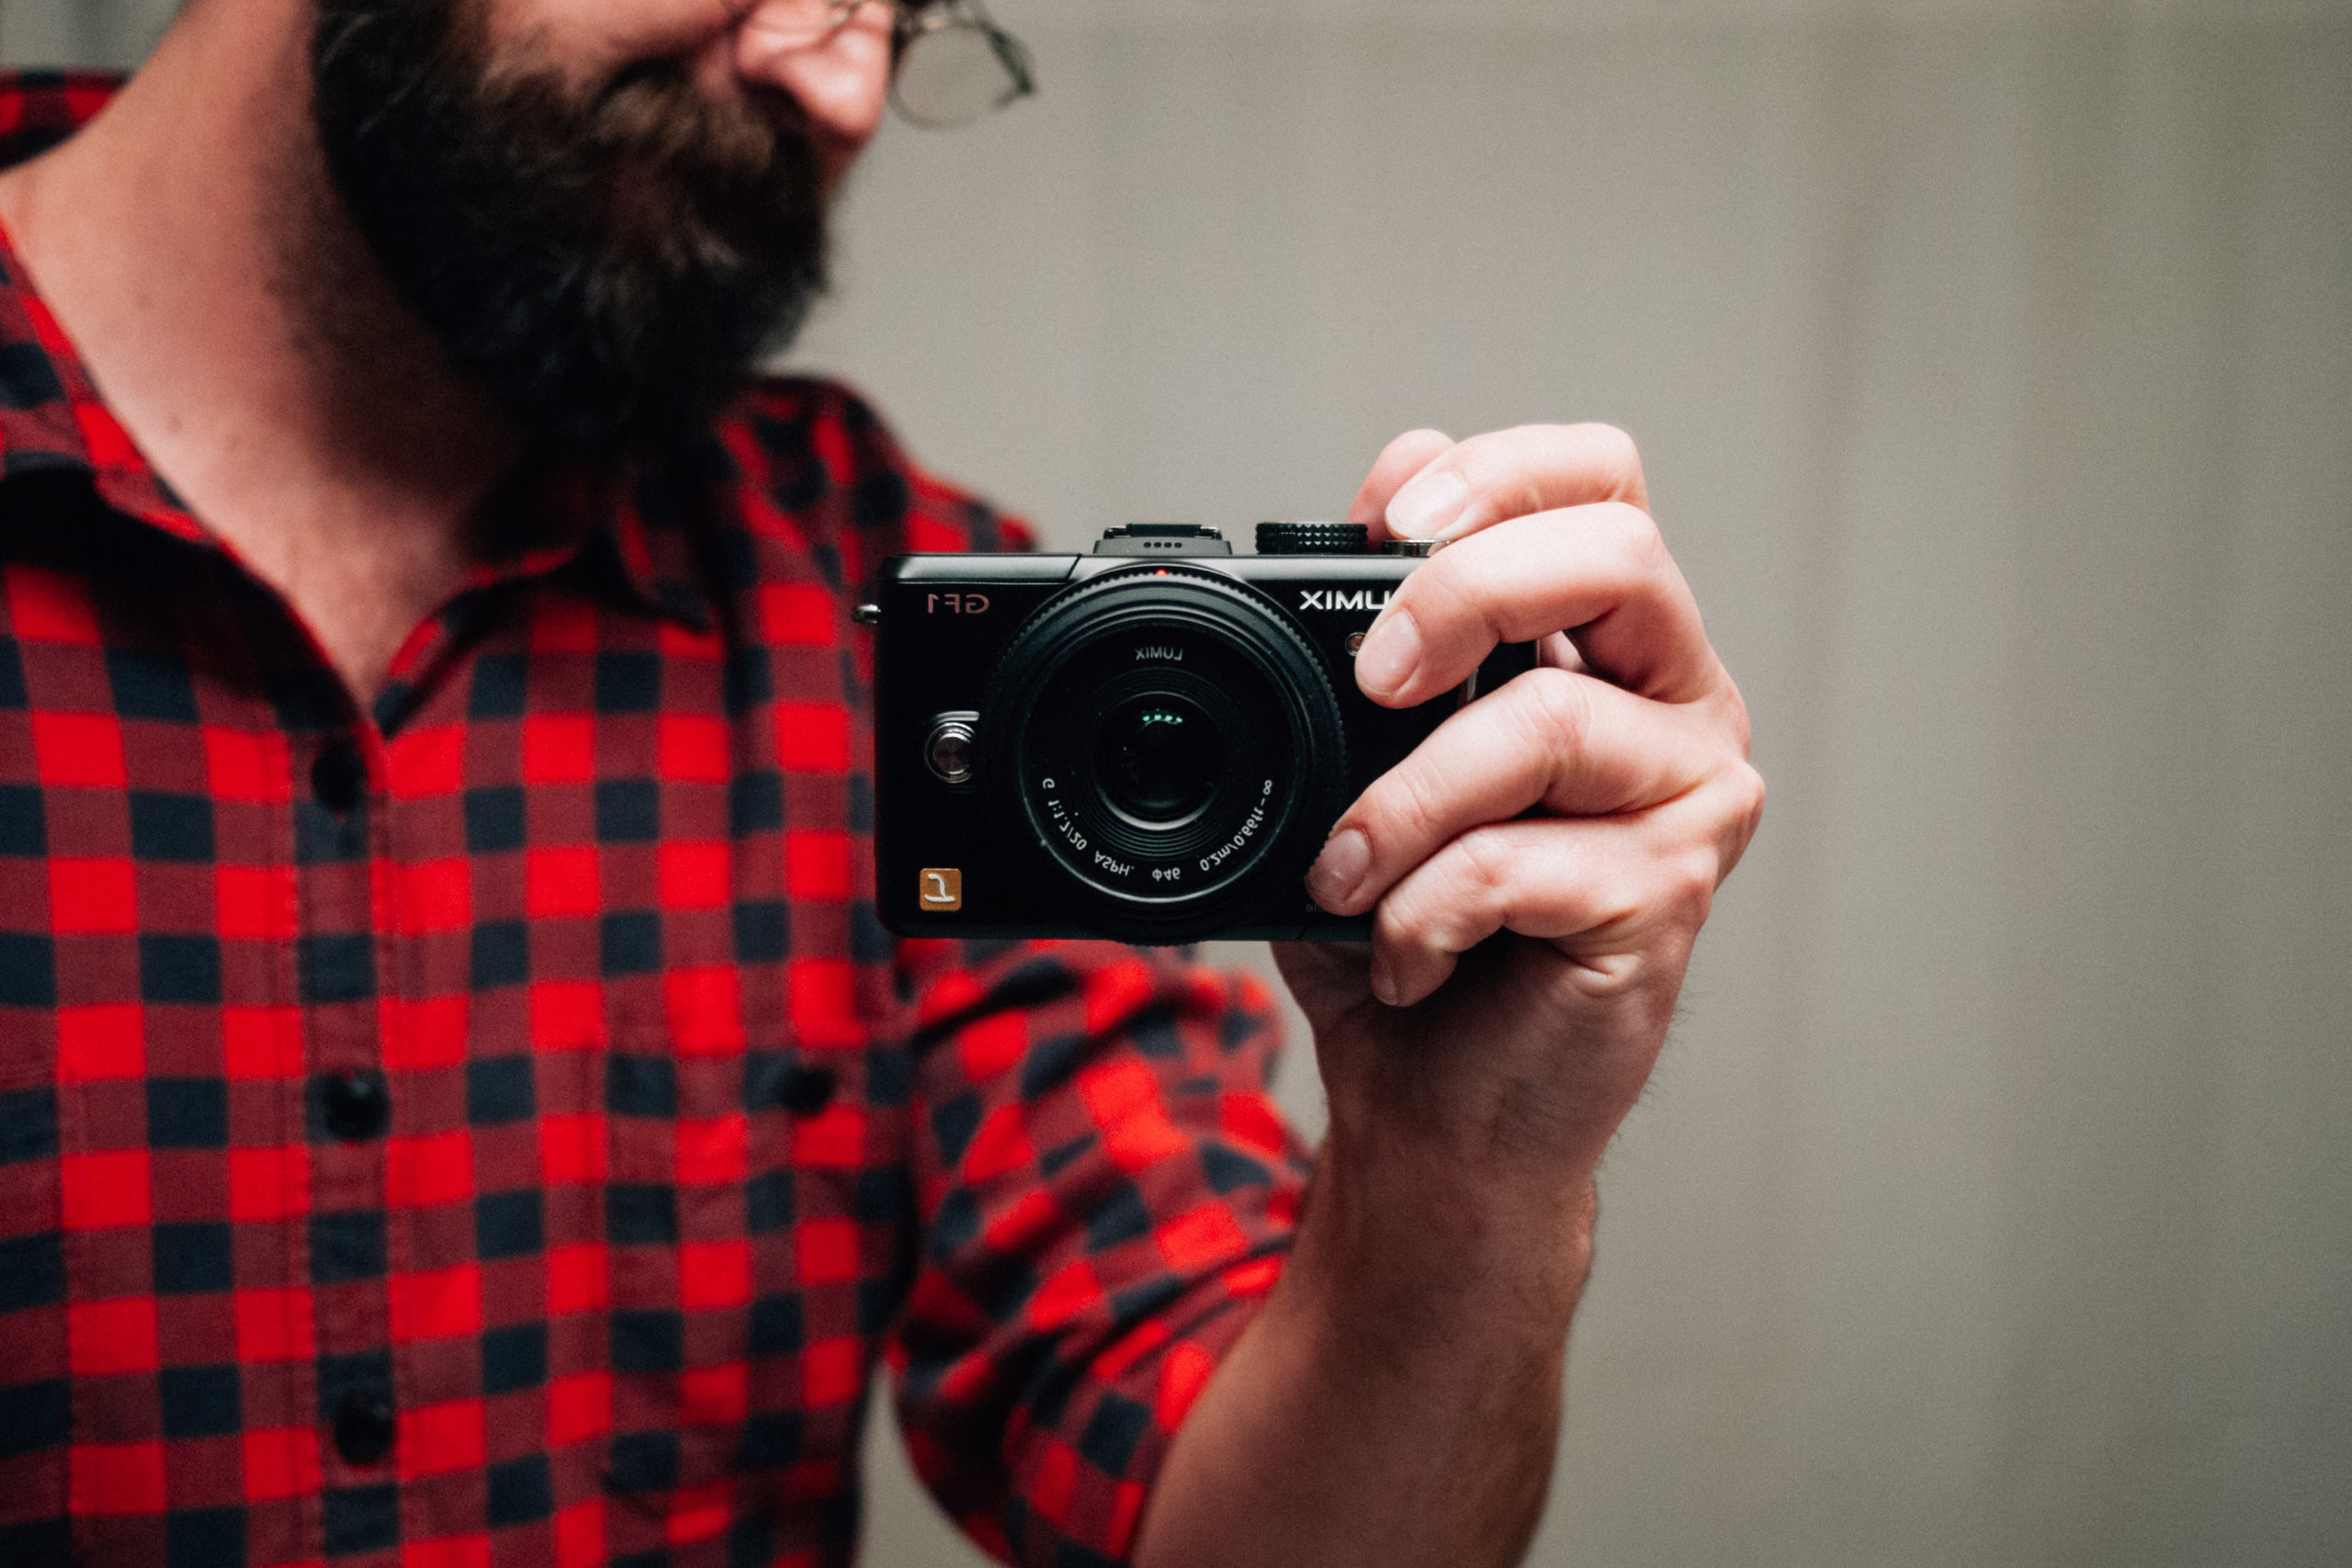 Man in buffalo check shirt holding a camera and taking a selfie in the mirror